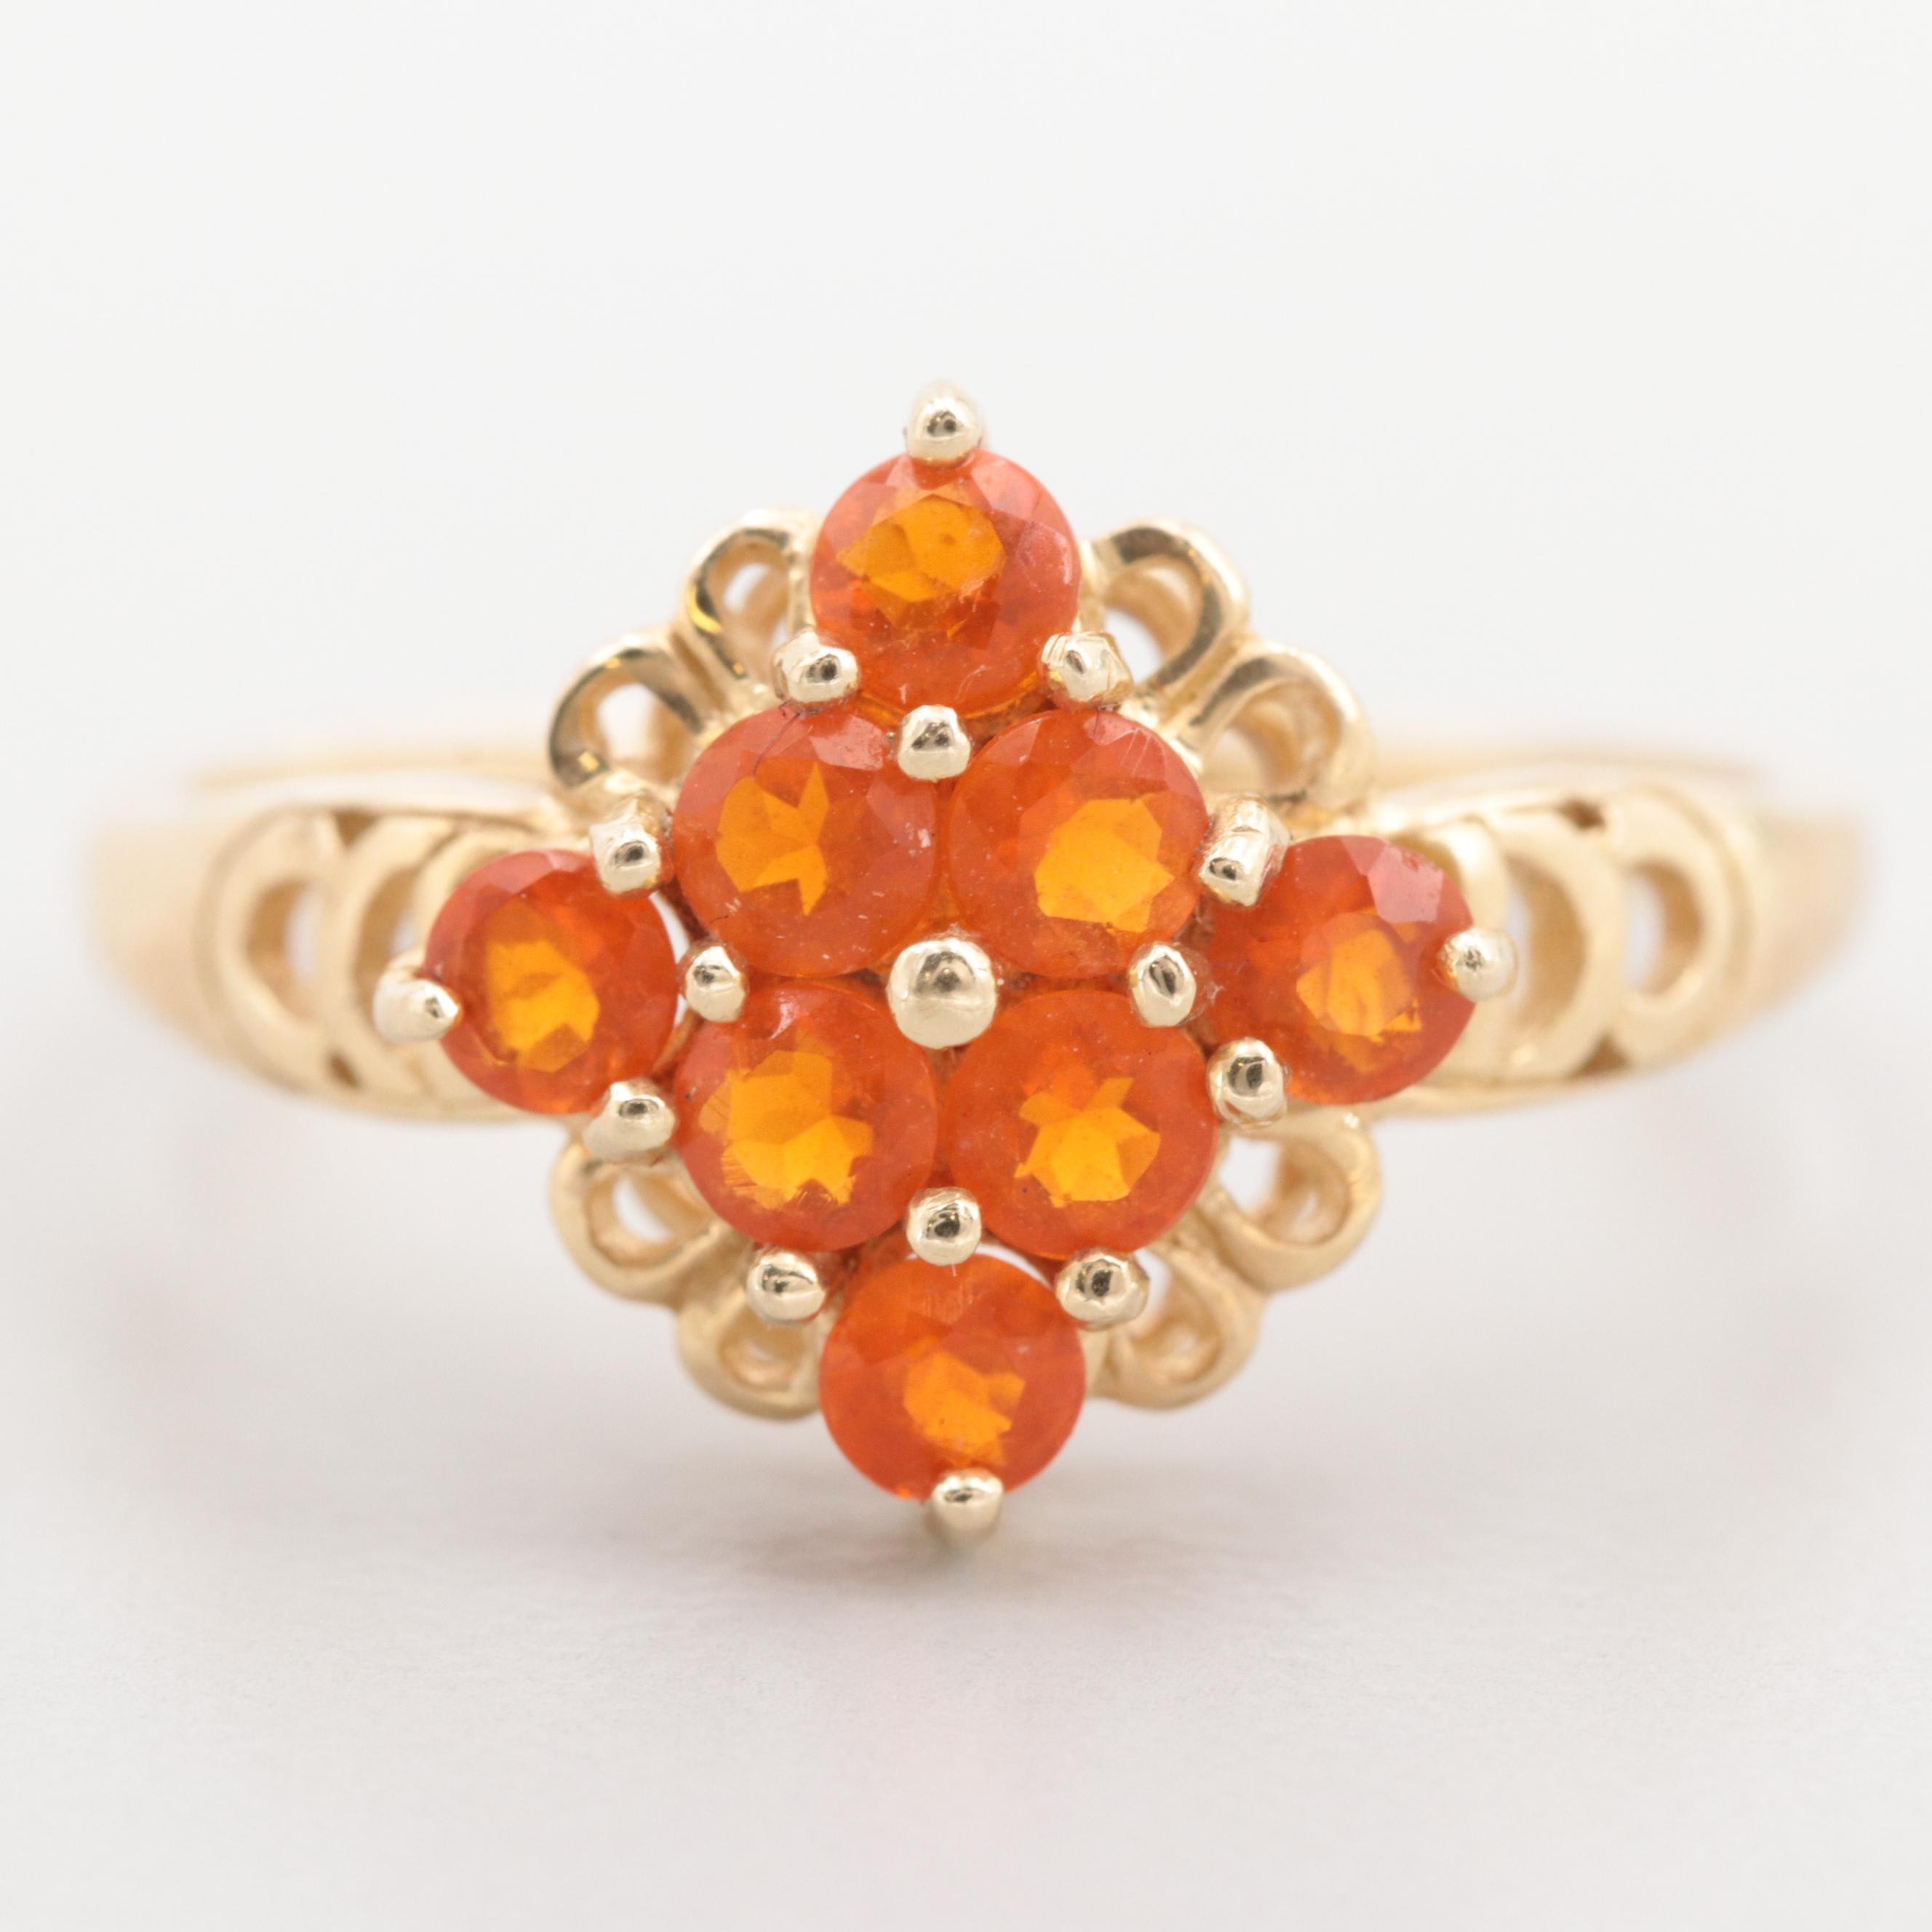 14K Yellow Gold Fire Opal Cluster Ring